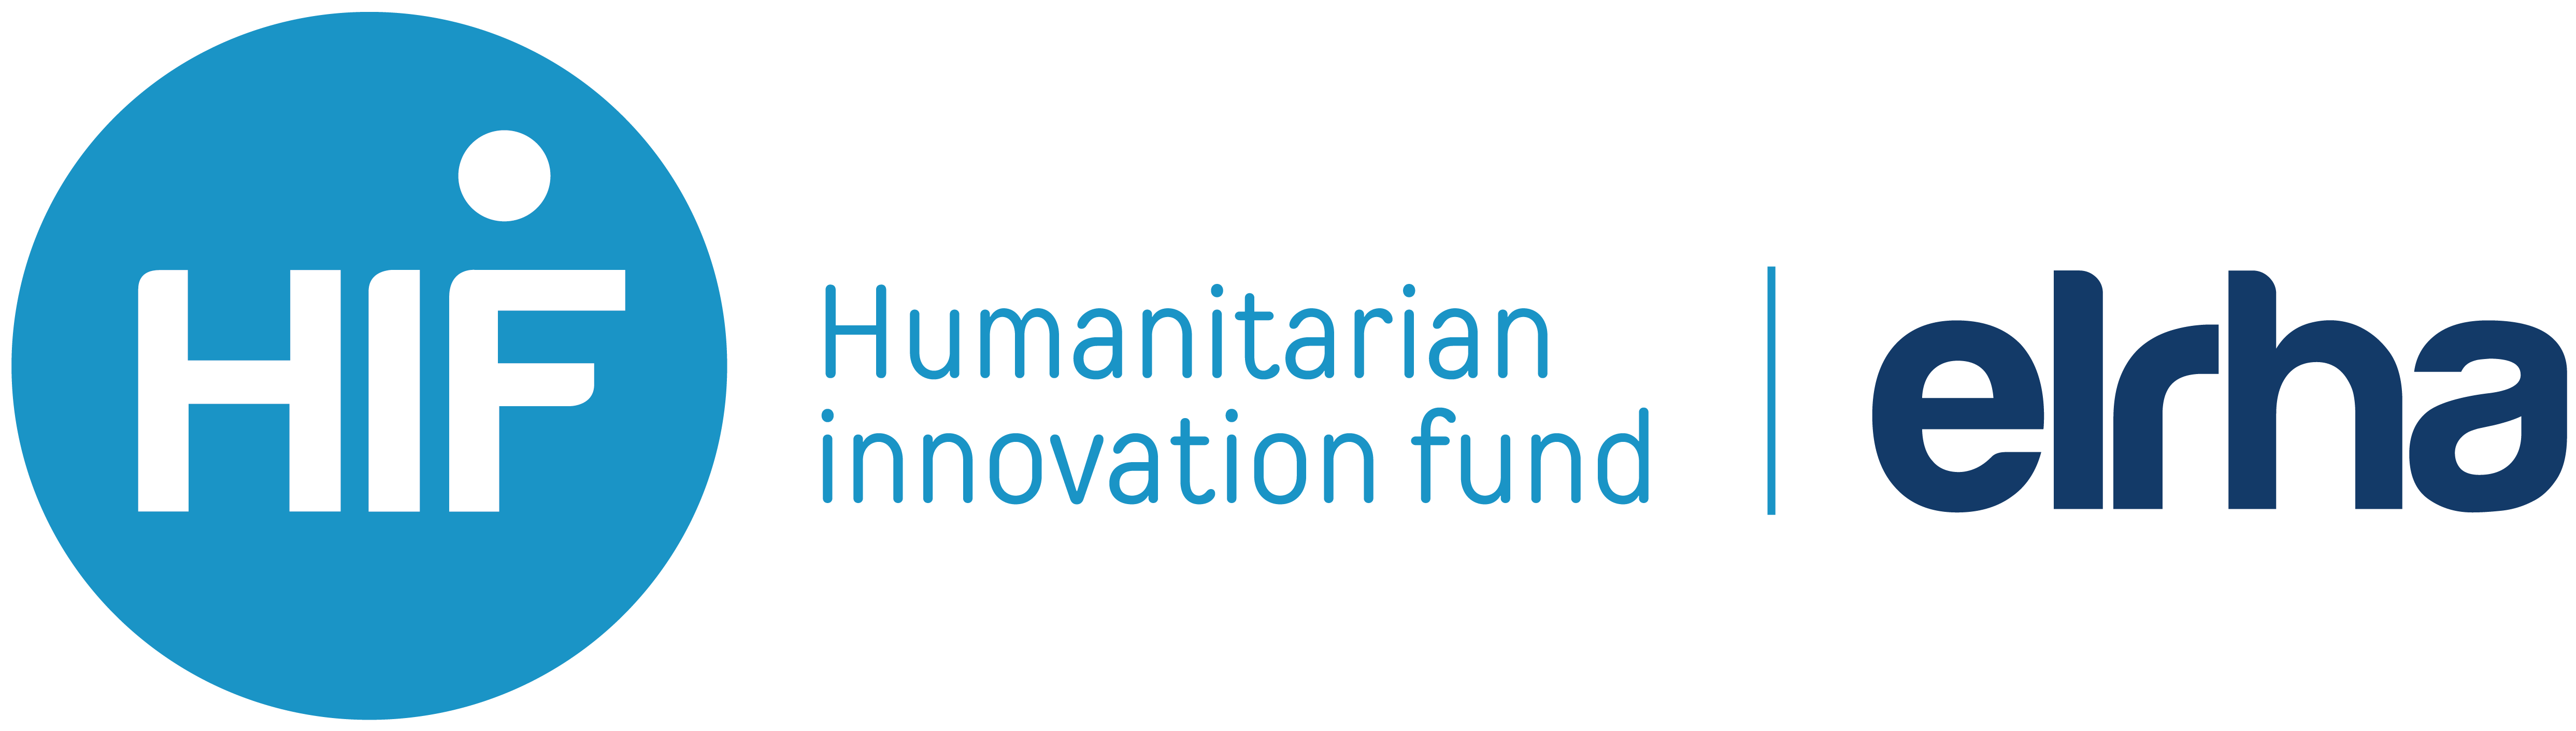 Humanitarian Innovation Fund